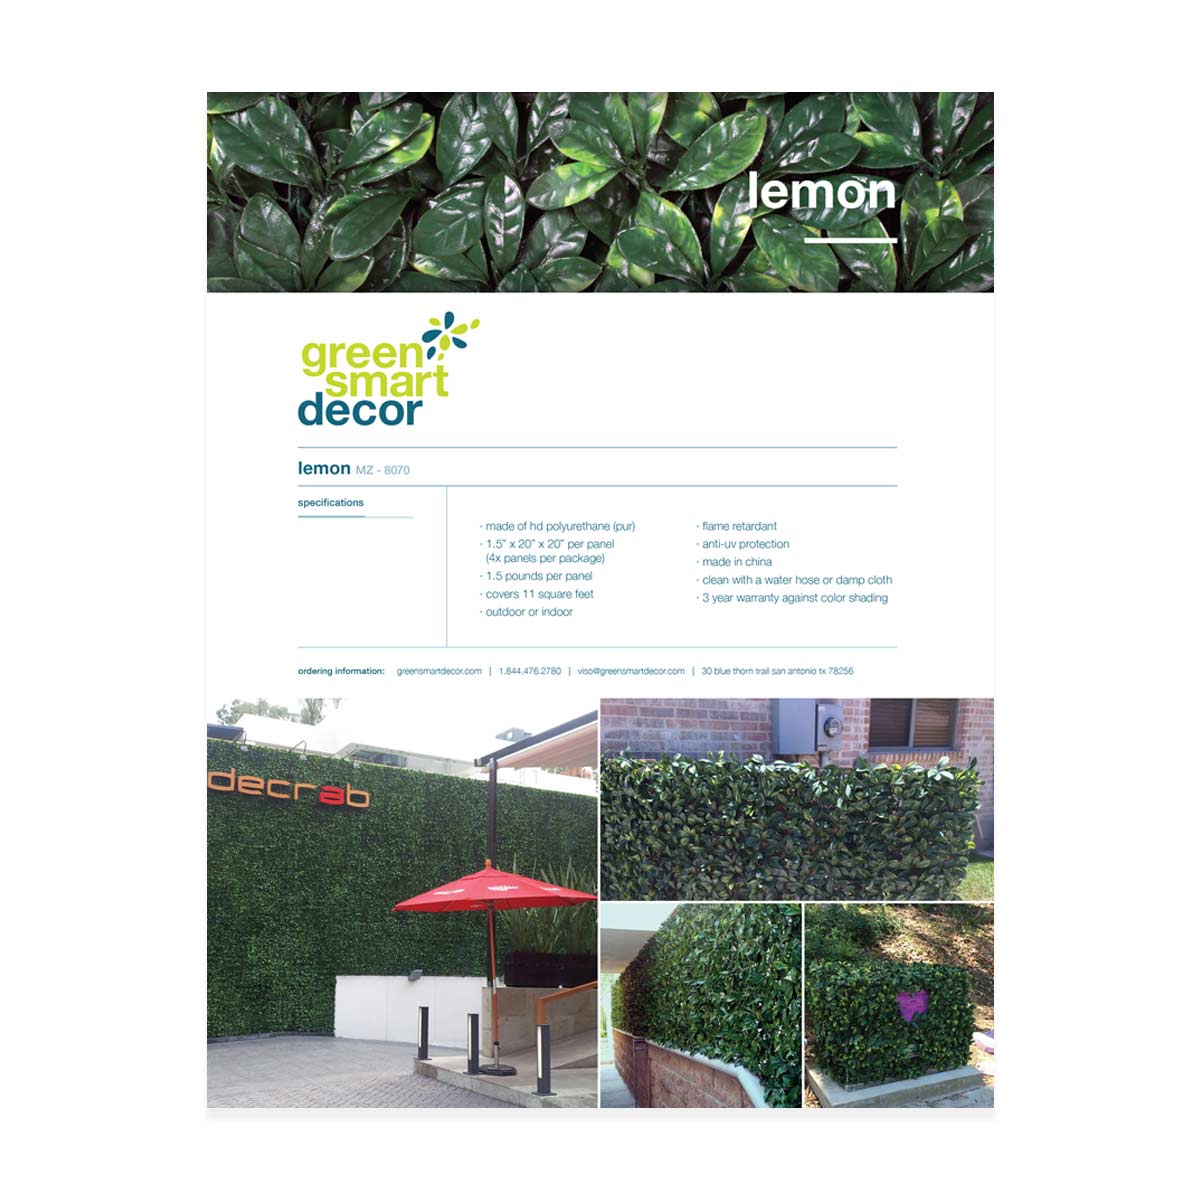 Greensmart catalog lemon page